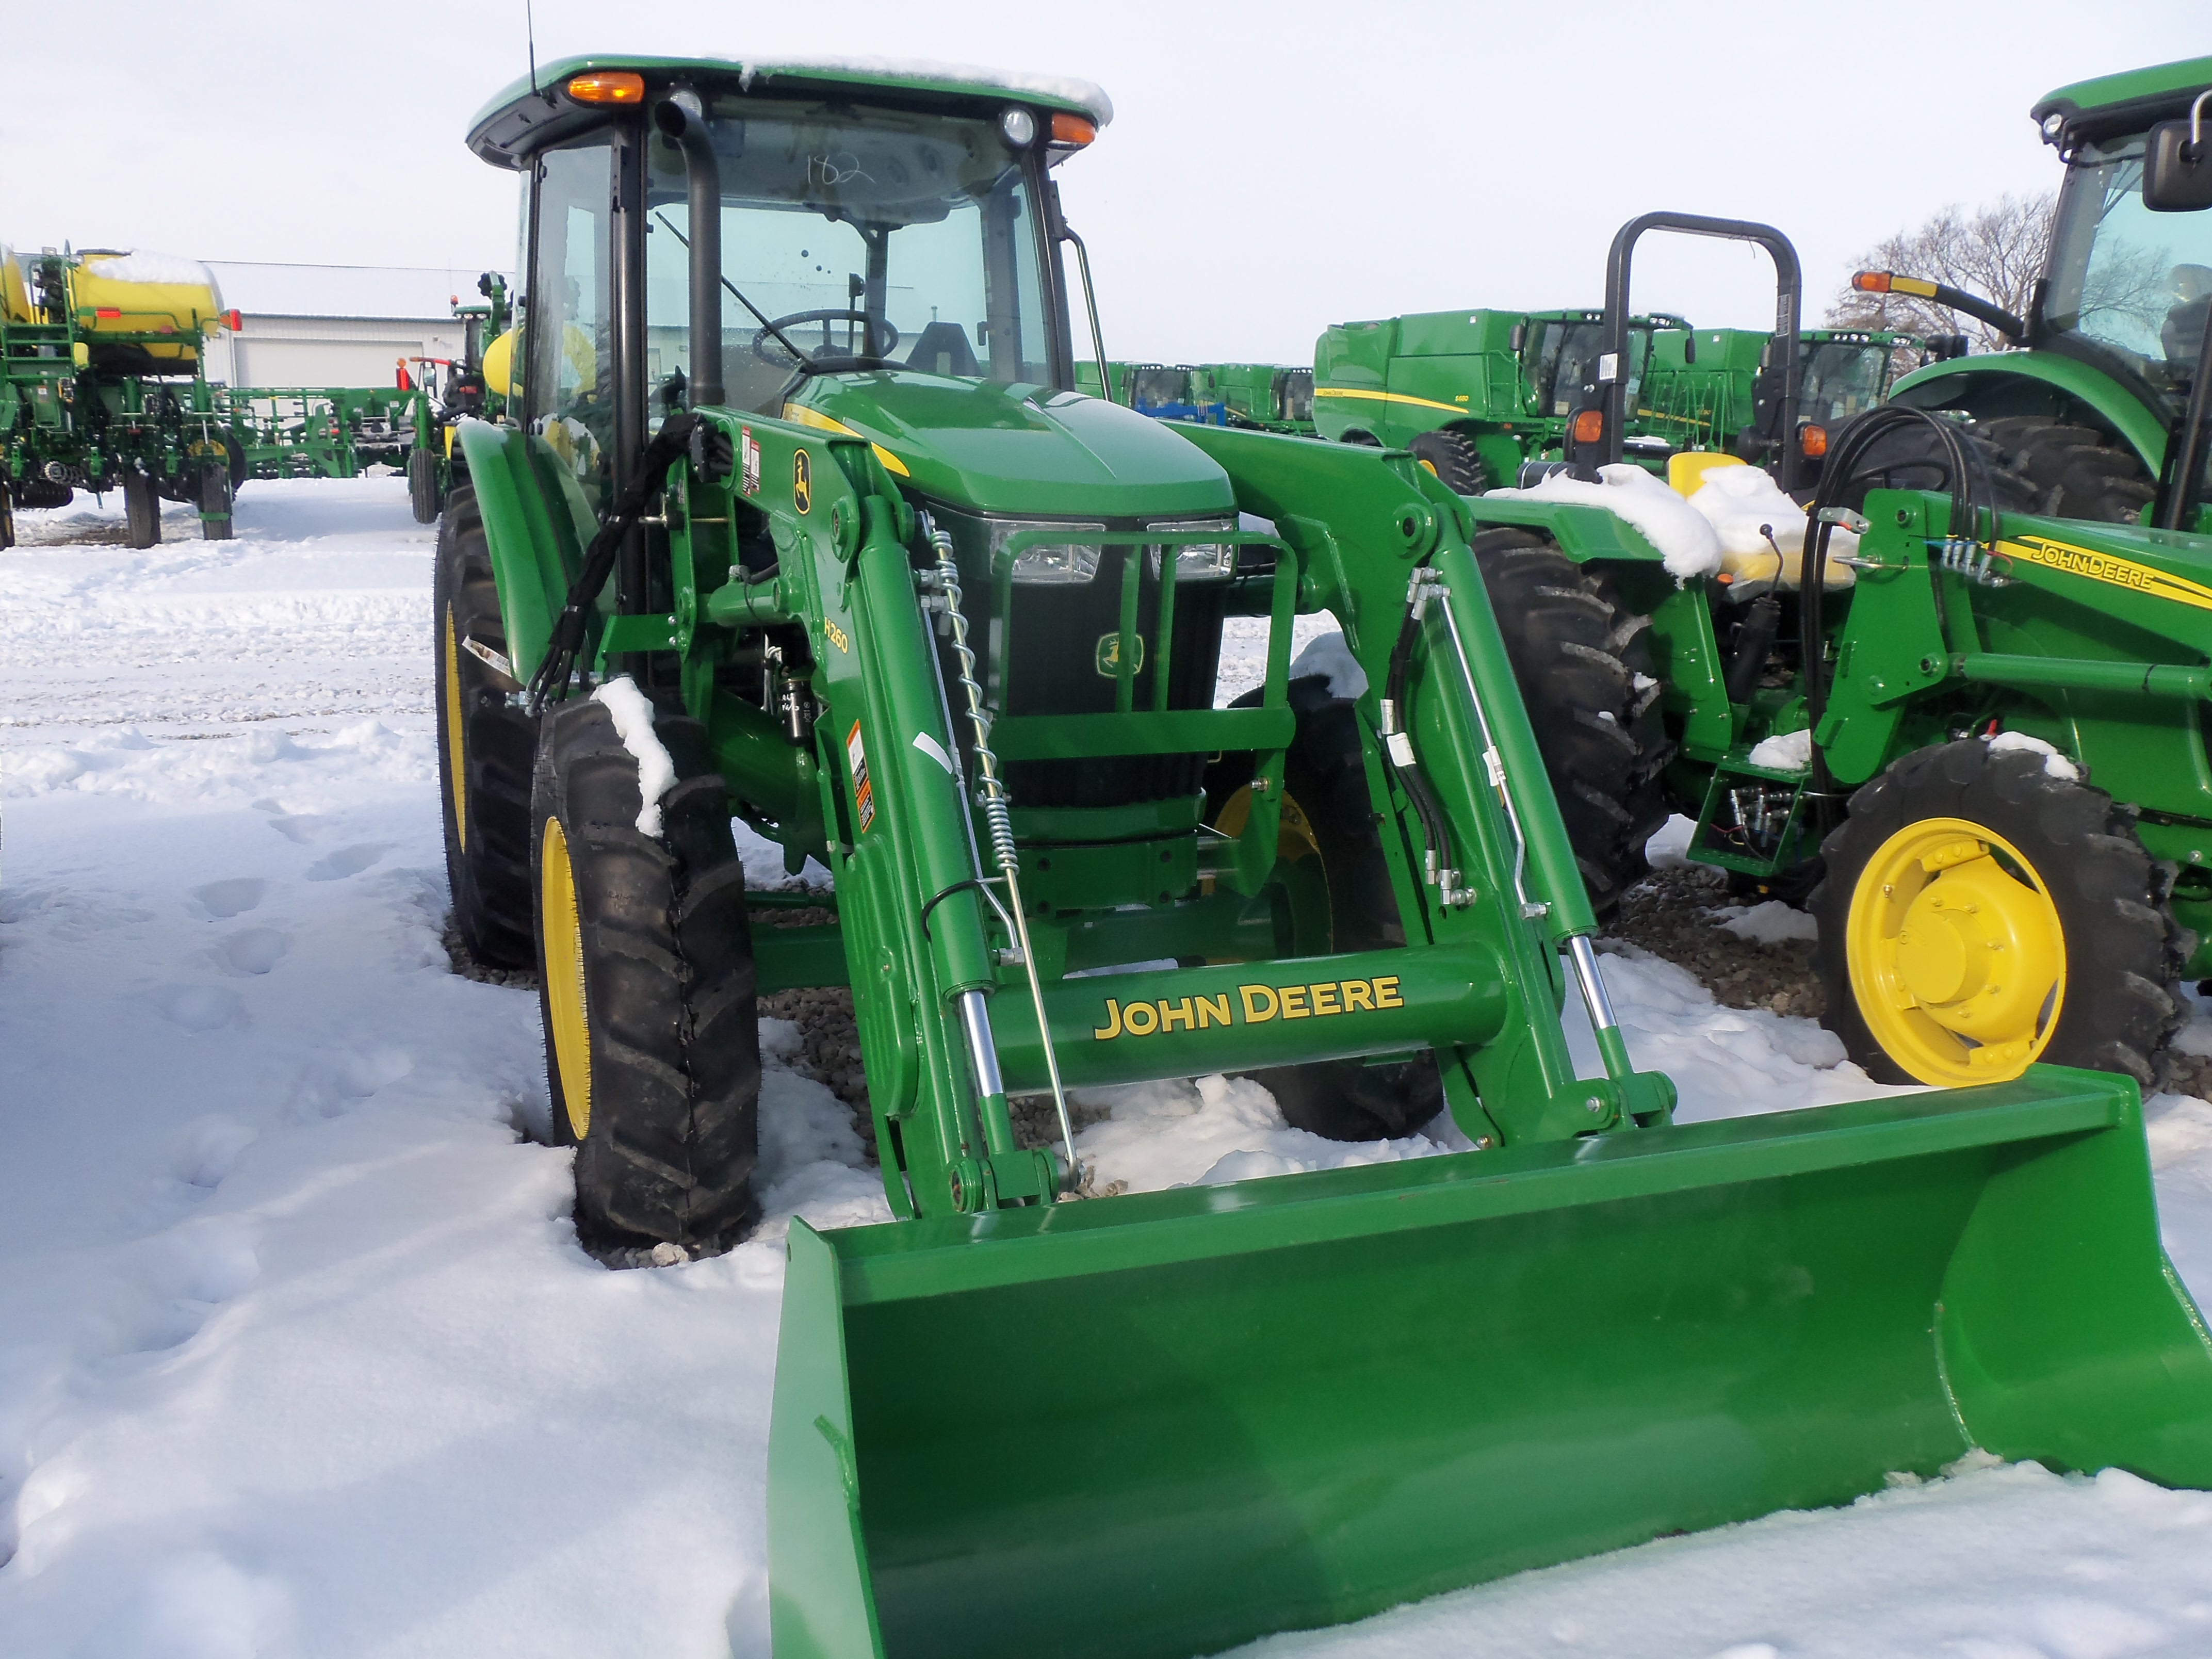 John Deere 5058E with H260 loader | John Deere equipment | Pinterest